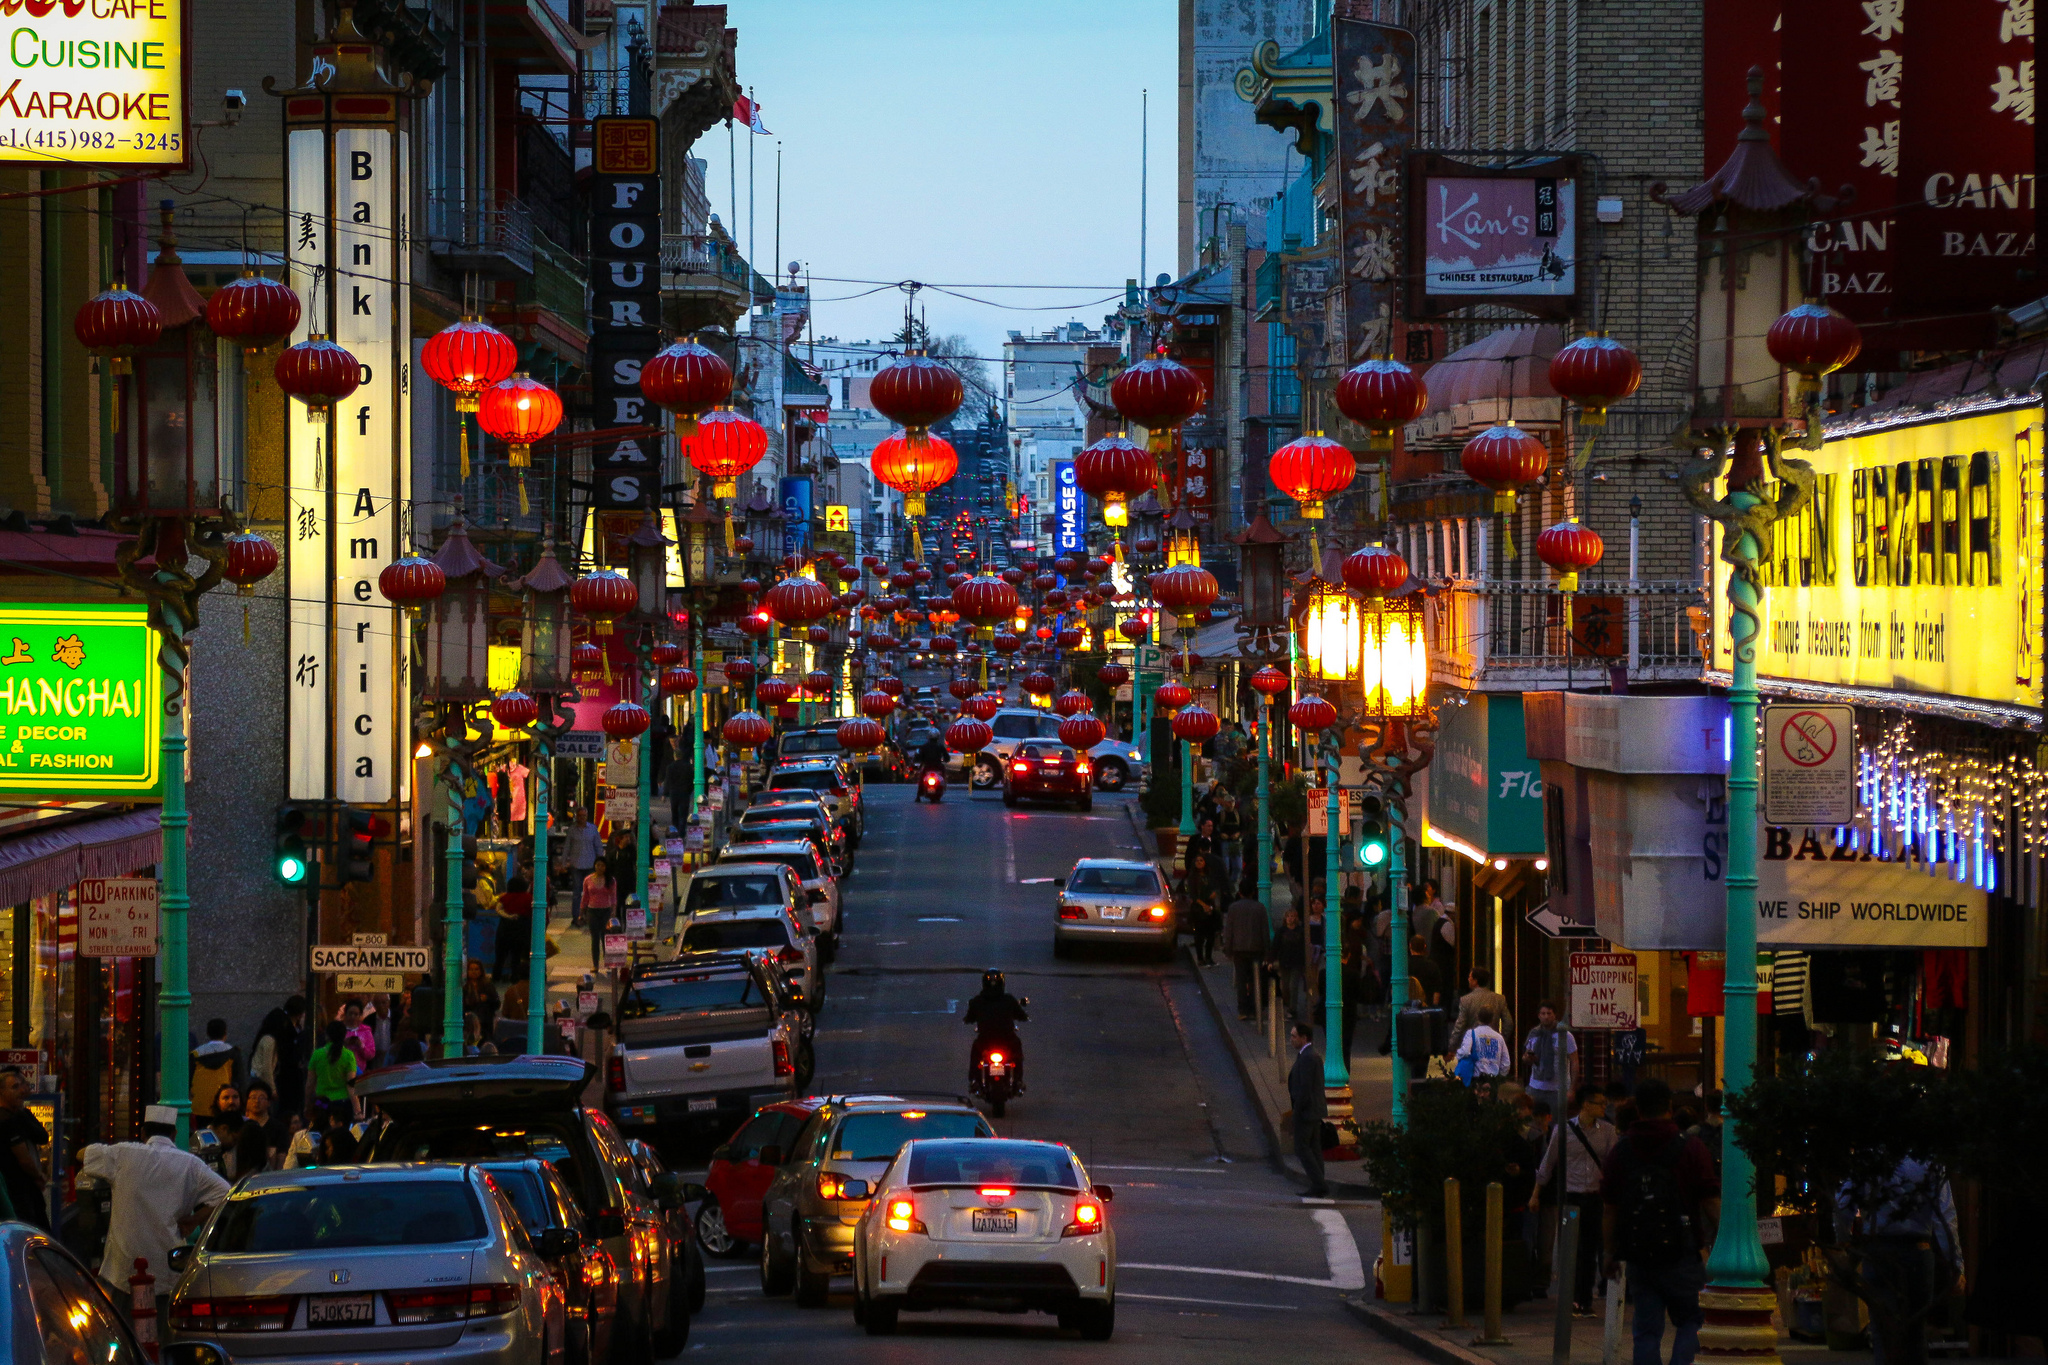 Some residents in Chinatown take precautions in case they are suddenly evicted.